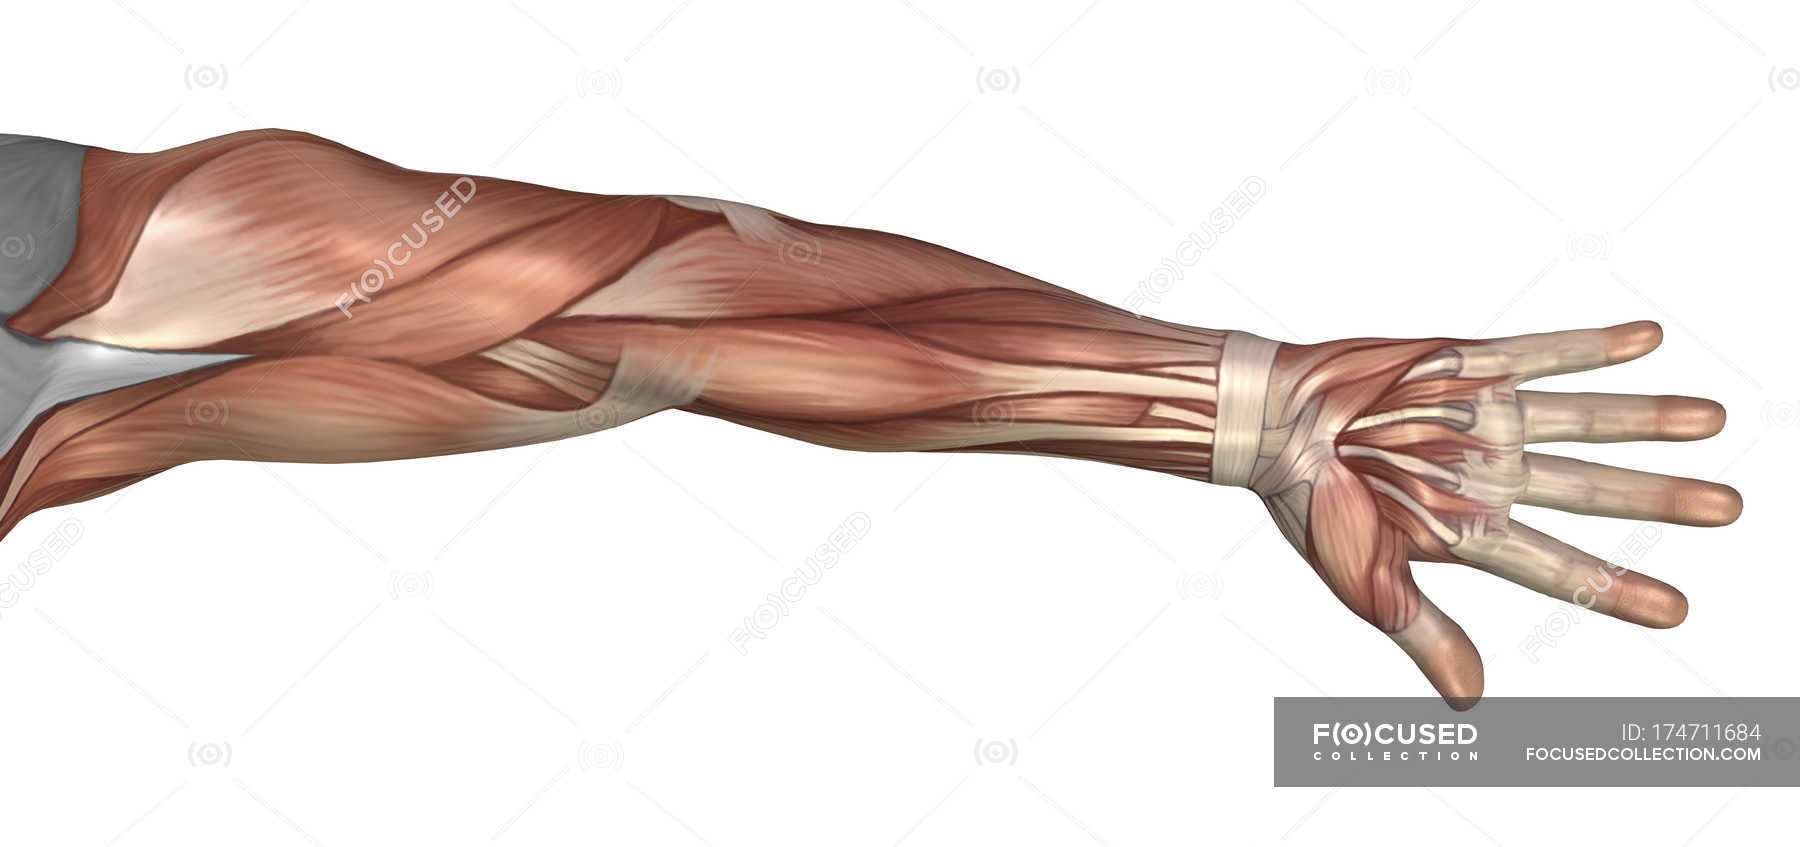 Muscle Anatomy Of The Human Arm Three Dimensional Medical